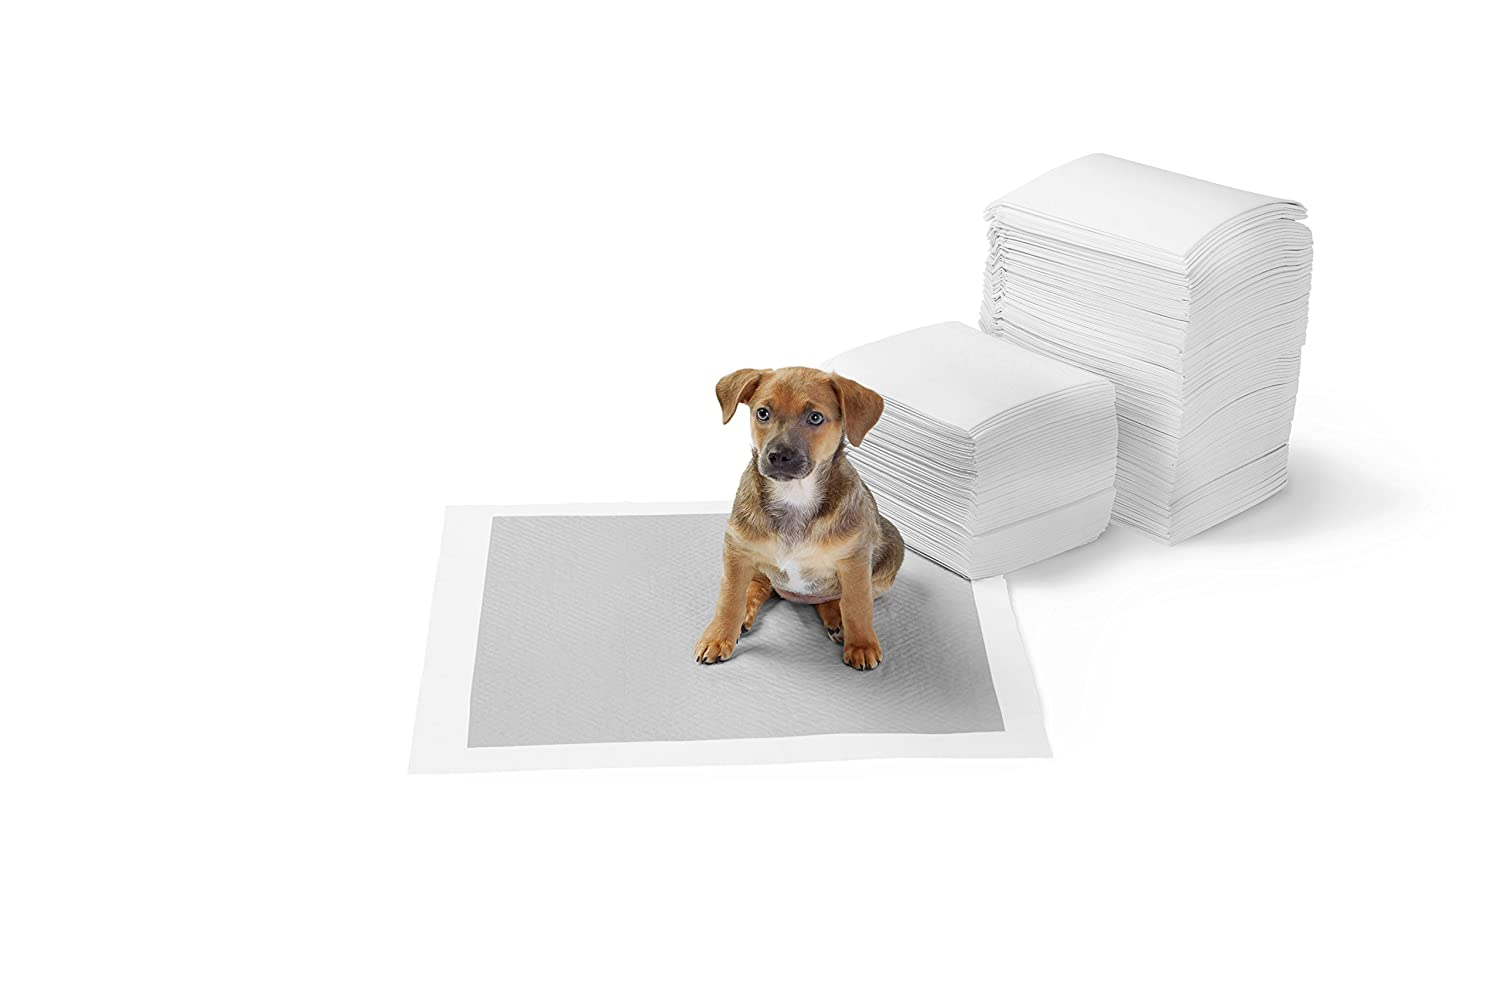 50 Count Extra-Large Basics Carbon Pet Training and Puppy Pads